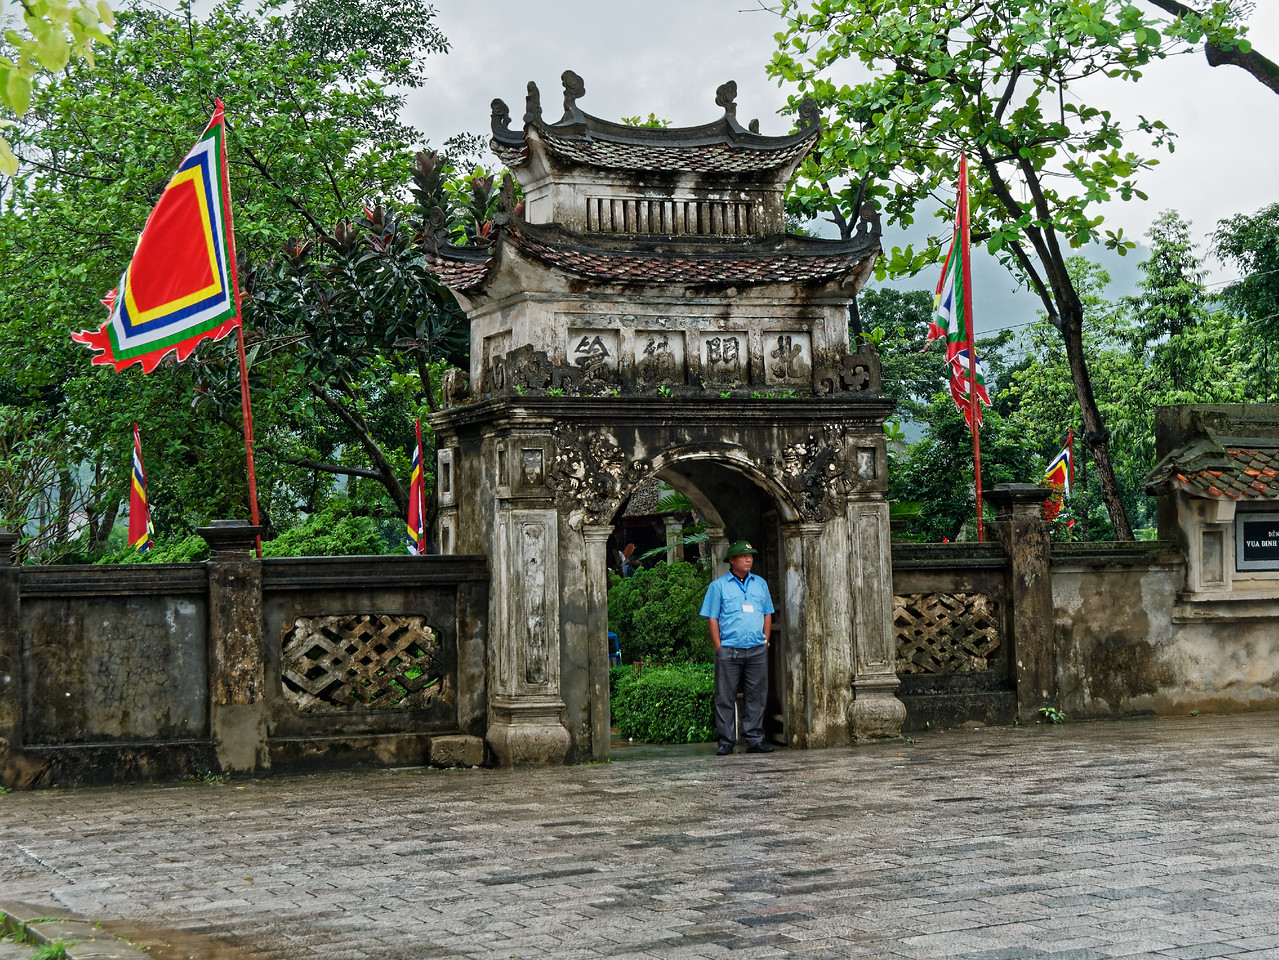 The entry pavilion at Dinh Temple on a drizzly morning